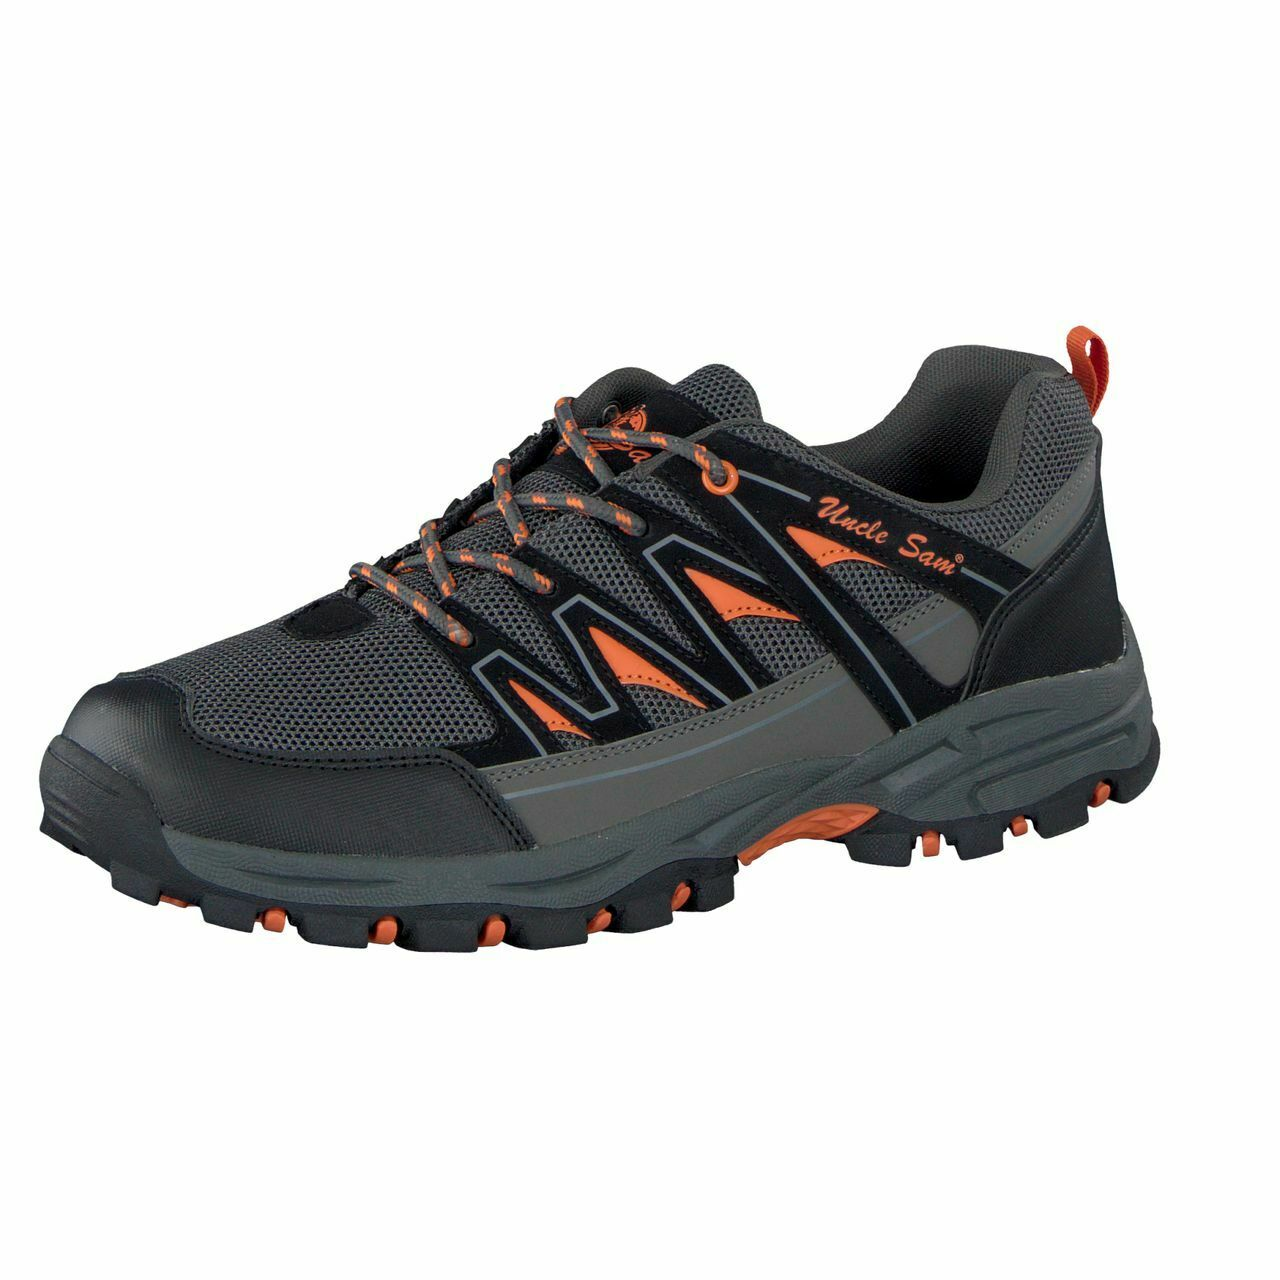 Uncle Sam Trekking shoes Men's Outdoor shoes Anthracite